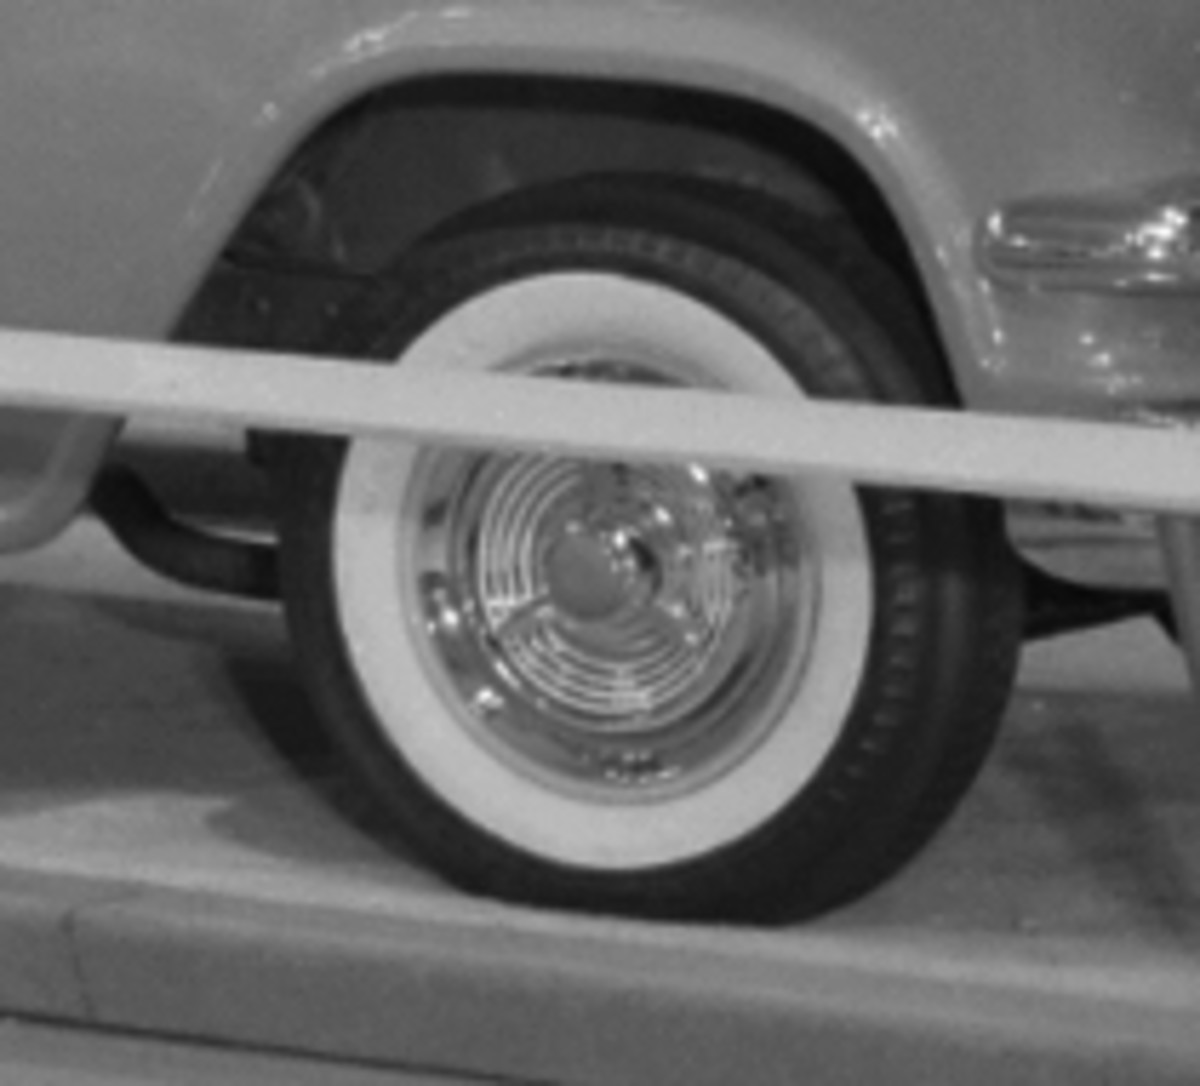 GMC didn't offer full wheel covers on its 1956 pickups, and this one on the Bluegrass Runabout looks as though it came from the 1955 Oldsmobile parts bin. (GM Media Archive collection)